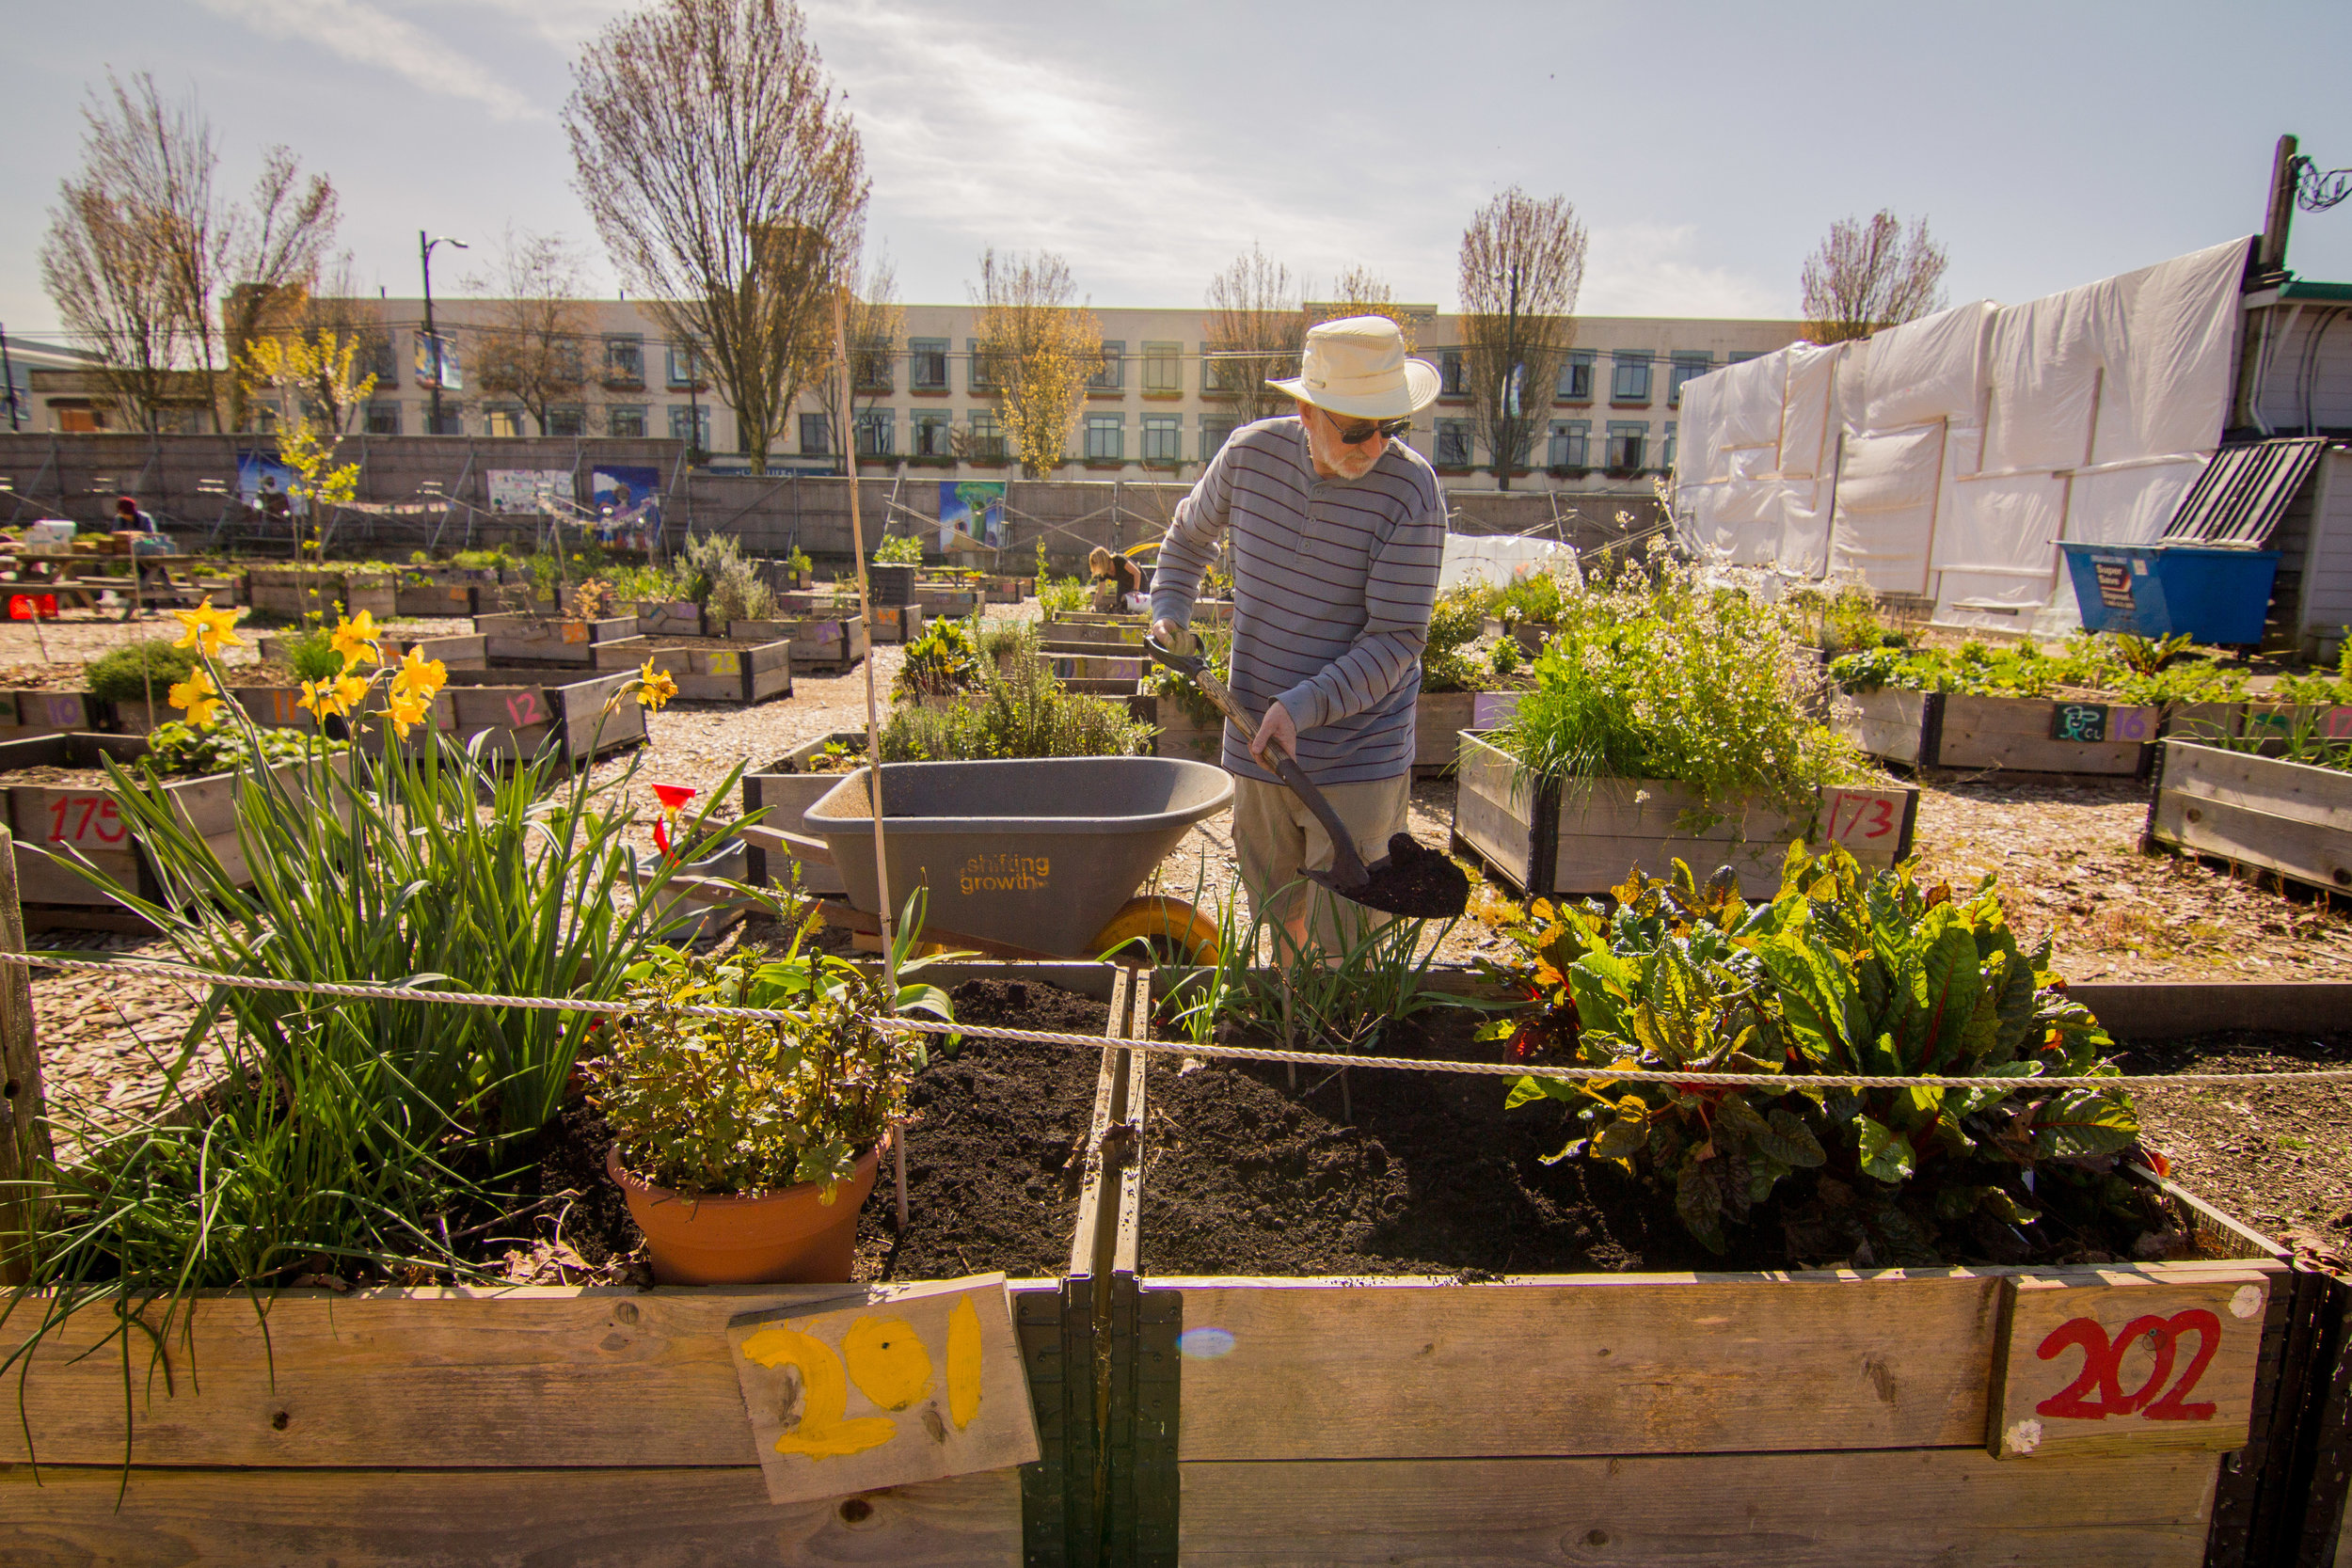 Raised_Garden_Bed_Hastings_North_Temporary_Community_Garden_04.2016_Shifting_Growth_79.jpg